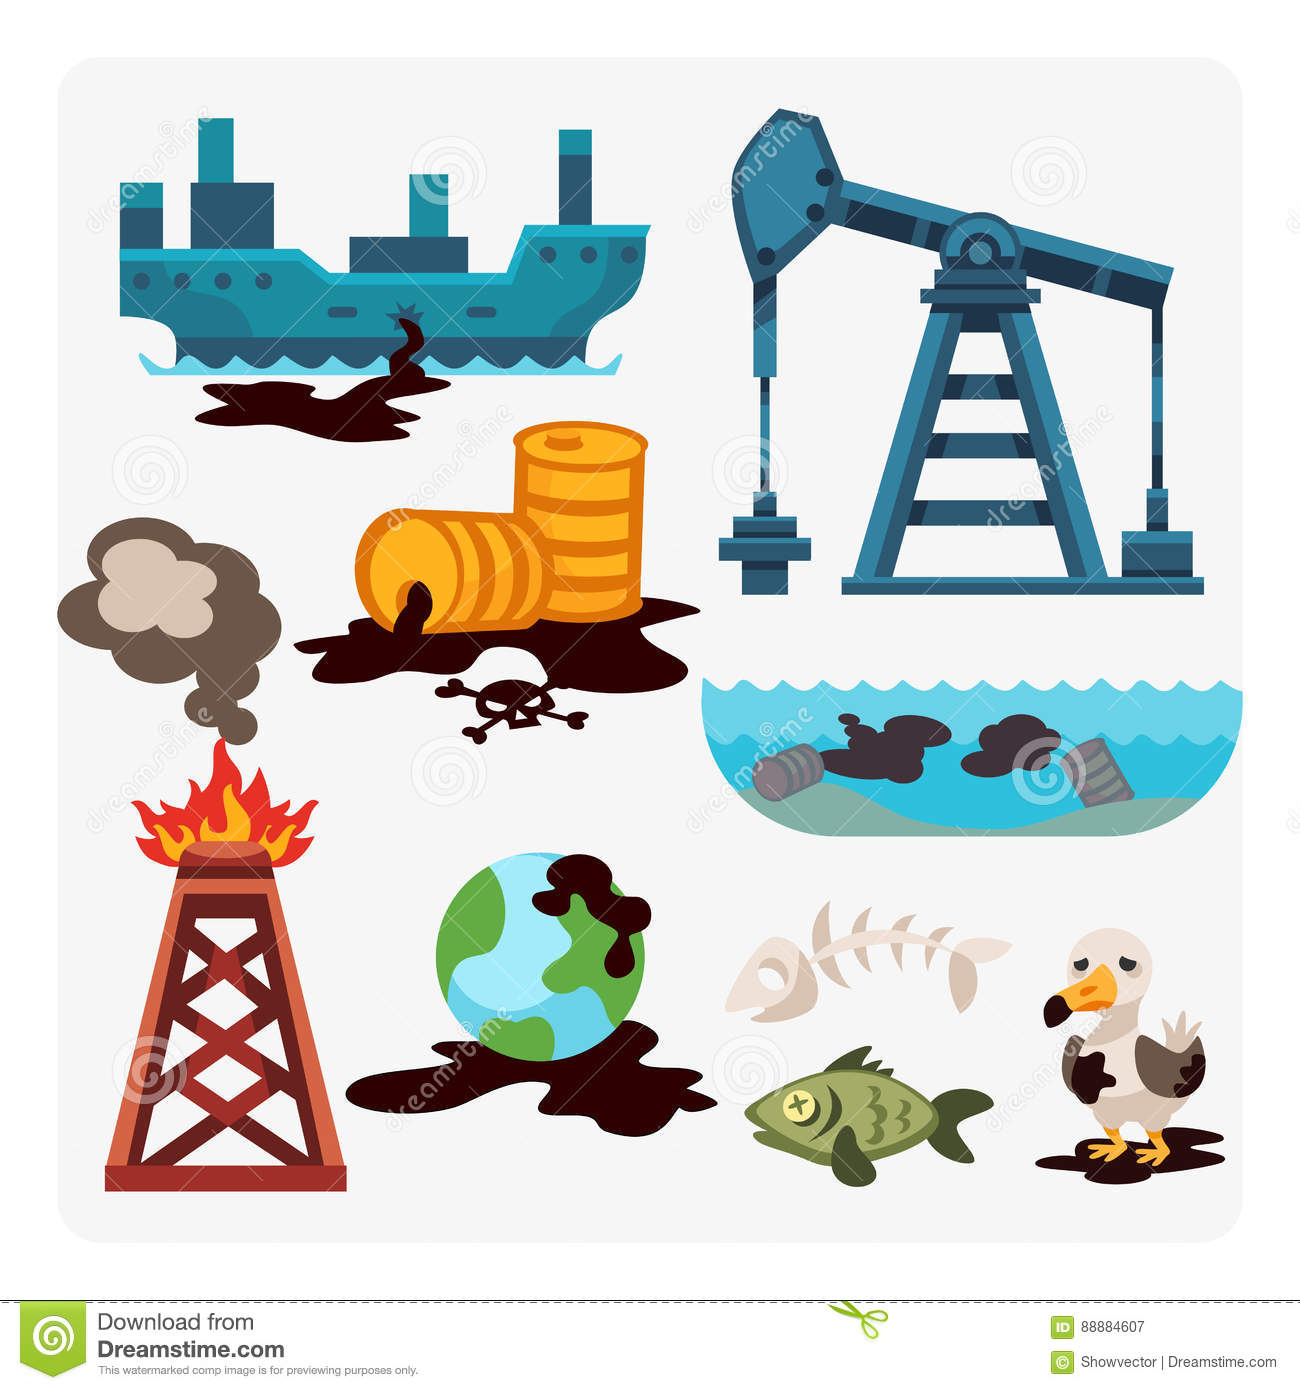 Ecological problems environmental oil pollution of water earth air deforestation destruction of animals mills factories